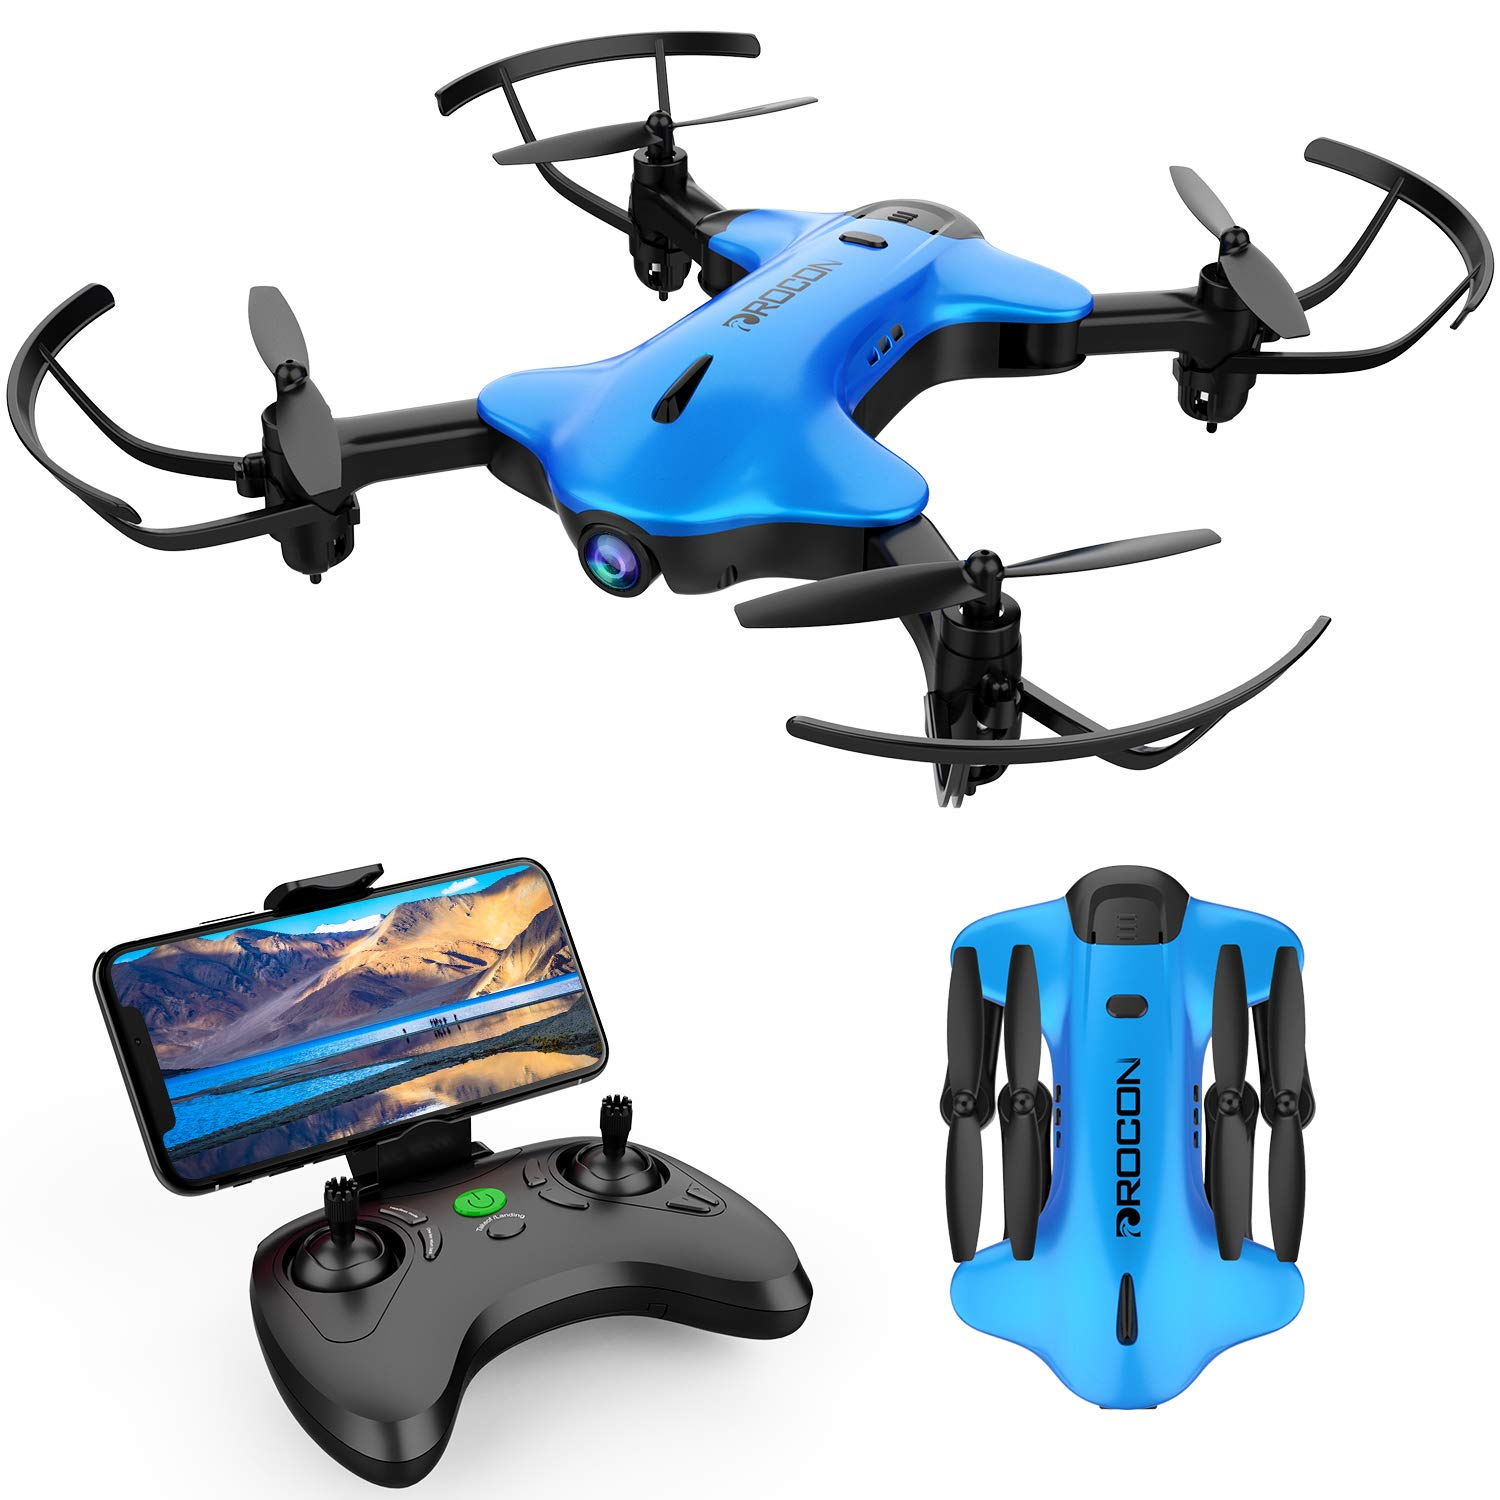 DROCON Ninja FPV Drone with 720P HD Wi-Fi Camera Live Video Feed 2.4GHz 6-Axis Gyro Quadcopter for Kids and Beginners with Altitude Hold, Foldable Arms, One Key Take Off/Landing, Color Blue